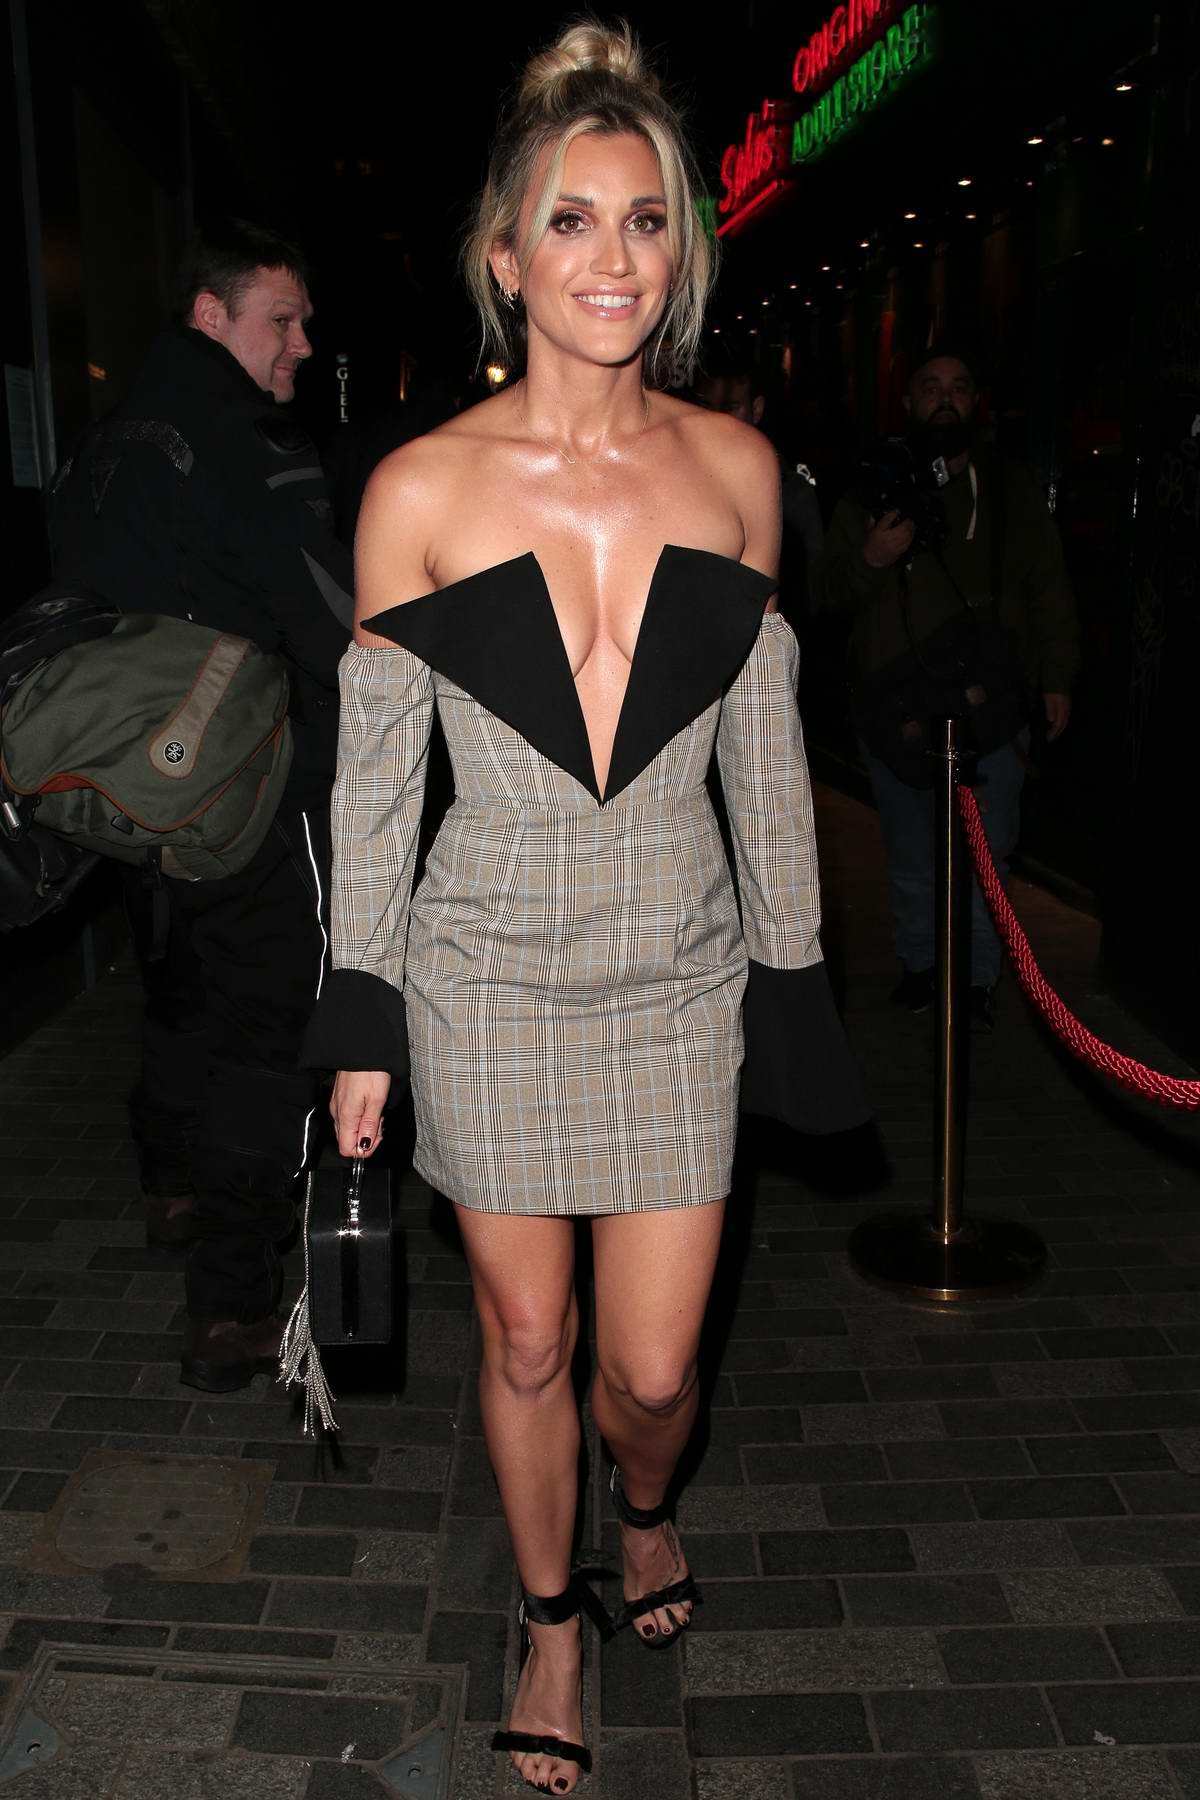 Ashley Roberts attends Cara Delevingne x Nasty Gal Launch Party in London, UK